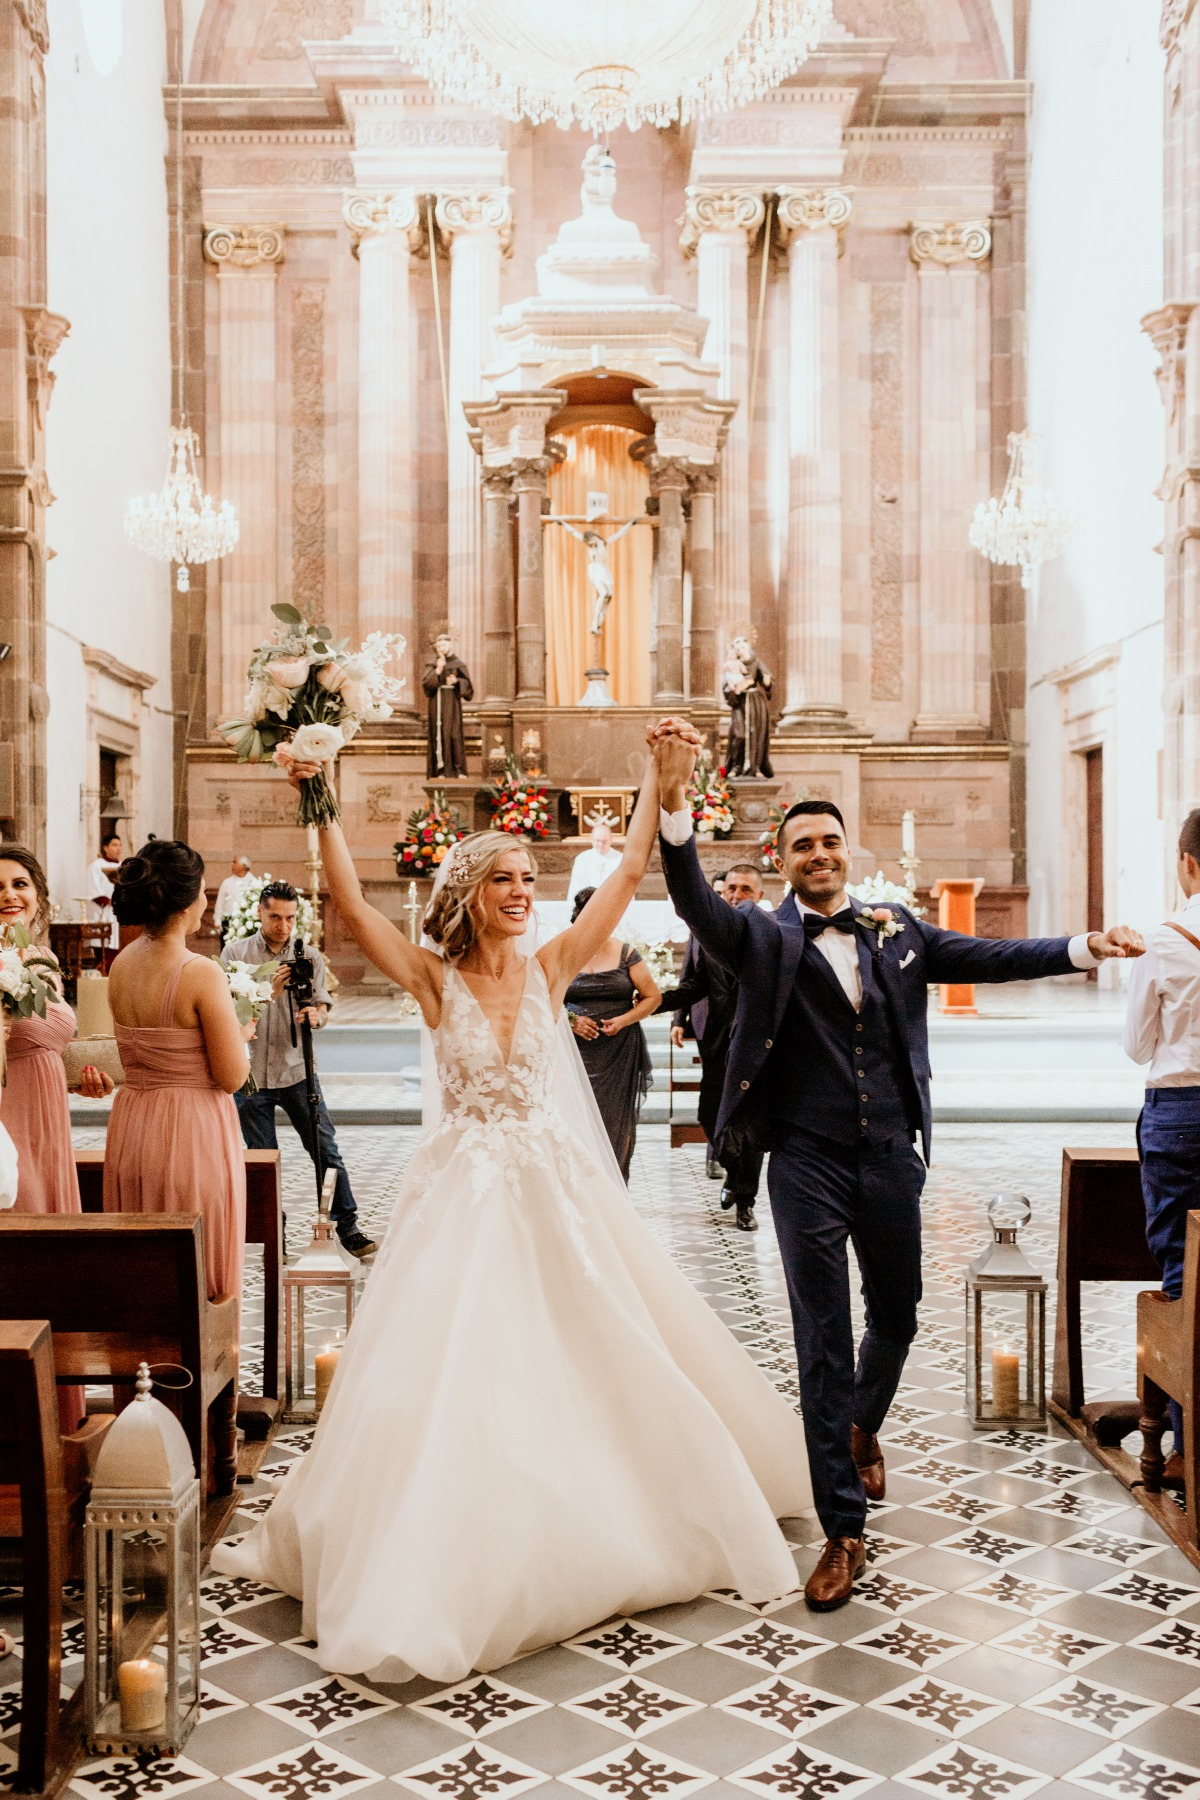 18th century church wedding in San Miguel de Allende